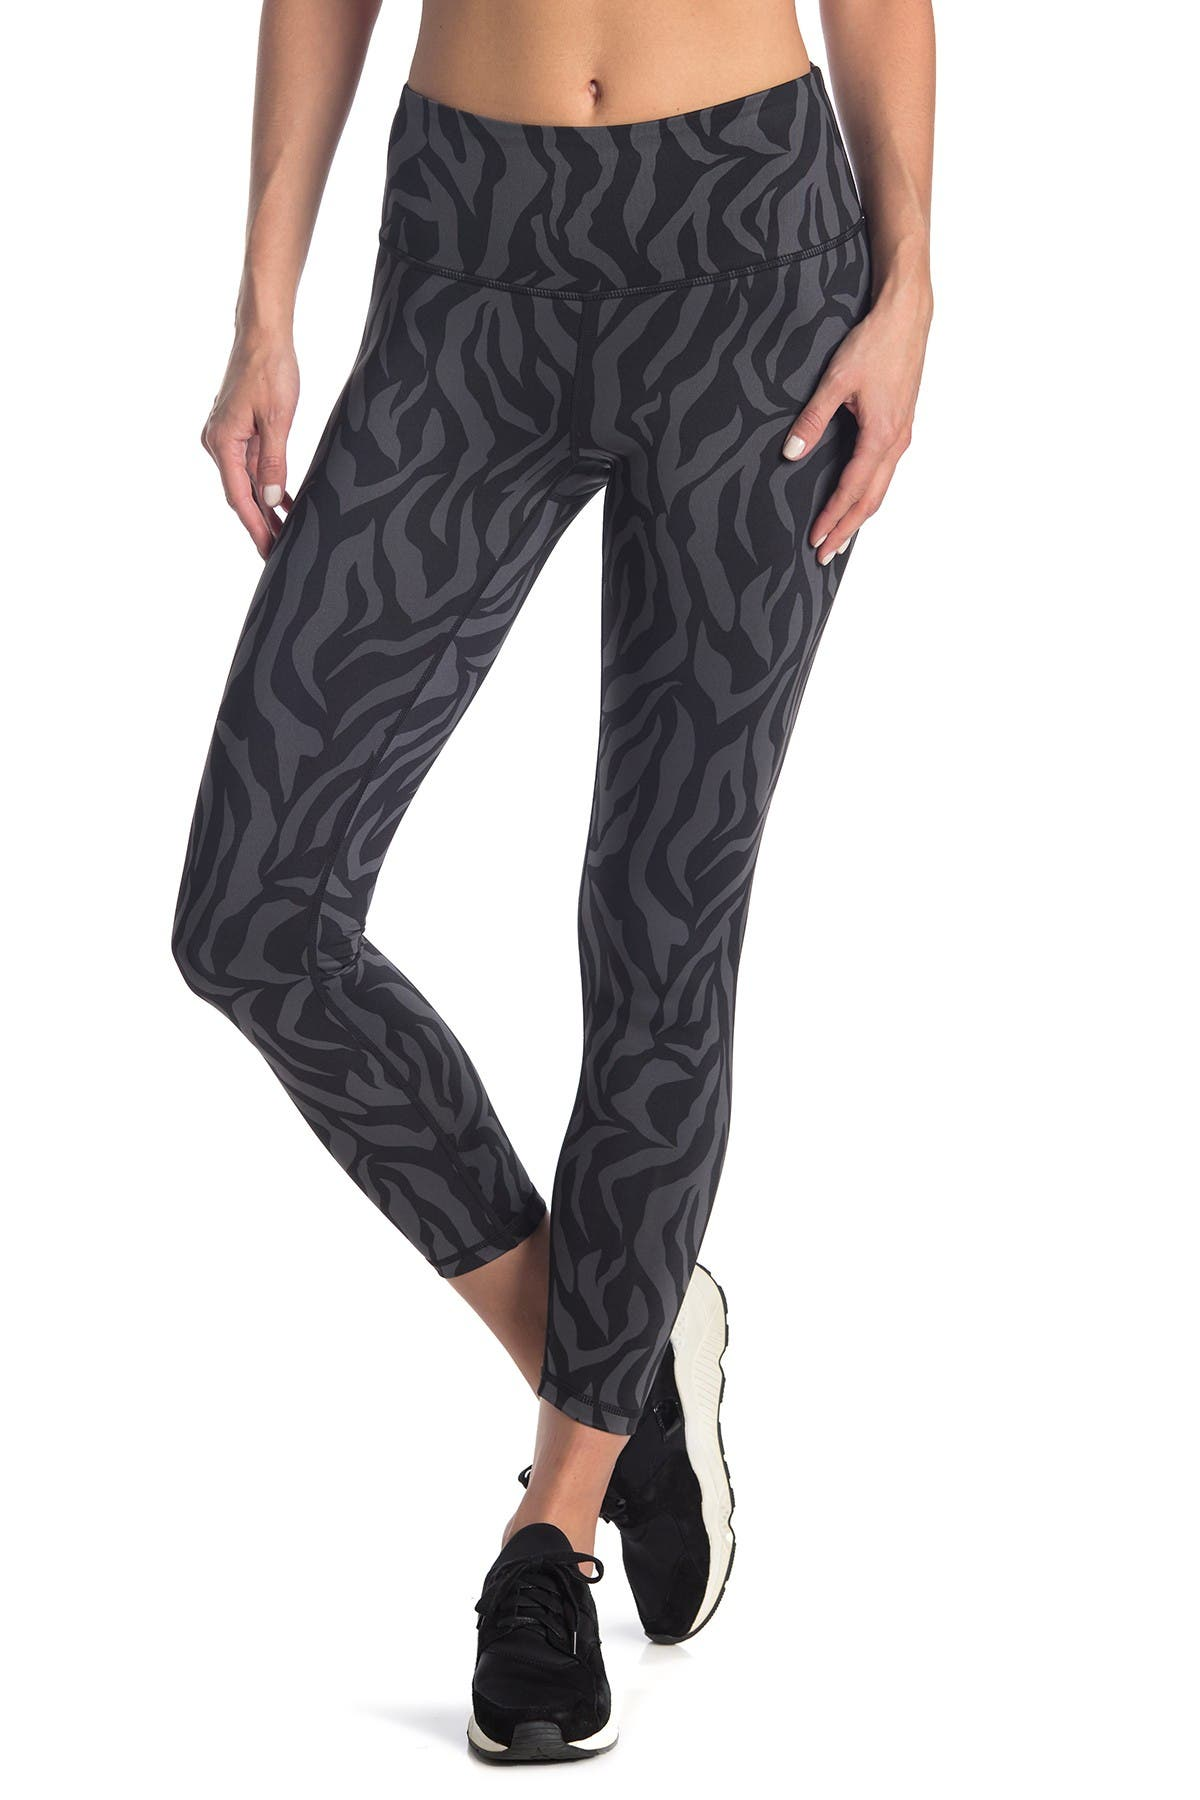 Image of Z By Zella Printed Daily High Waist 7/8 Leggings